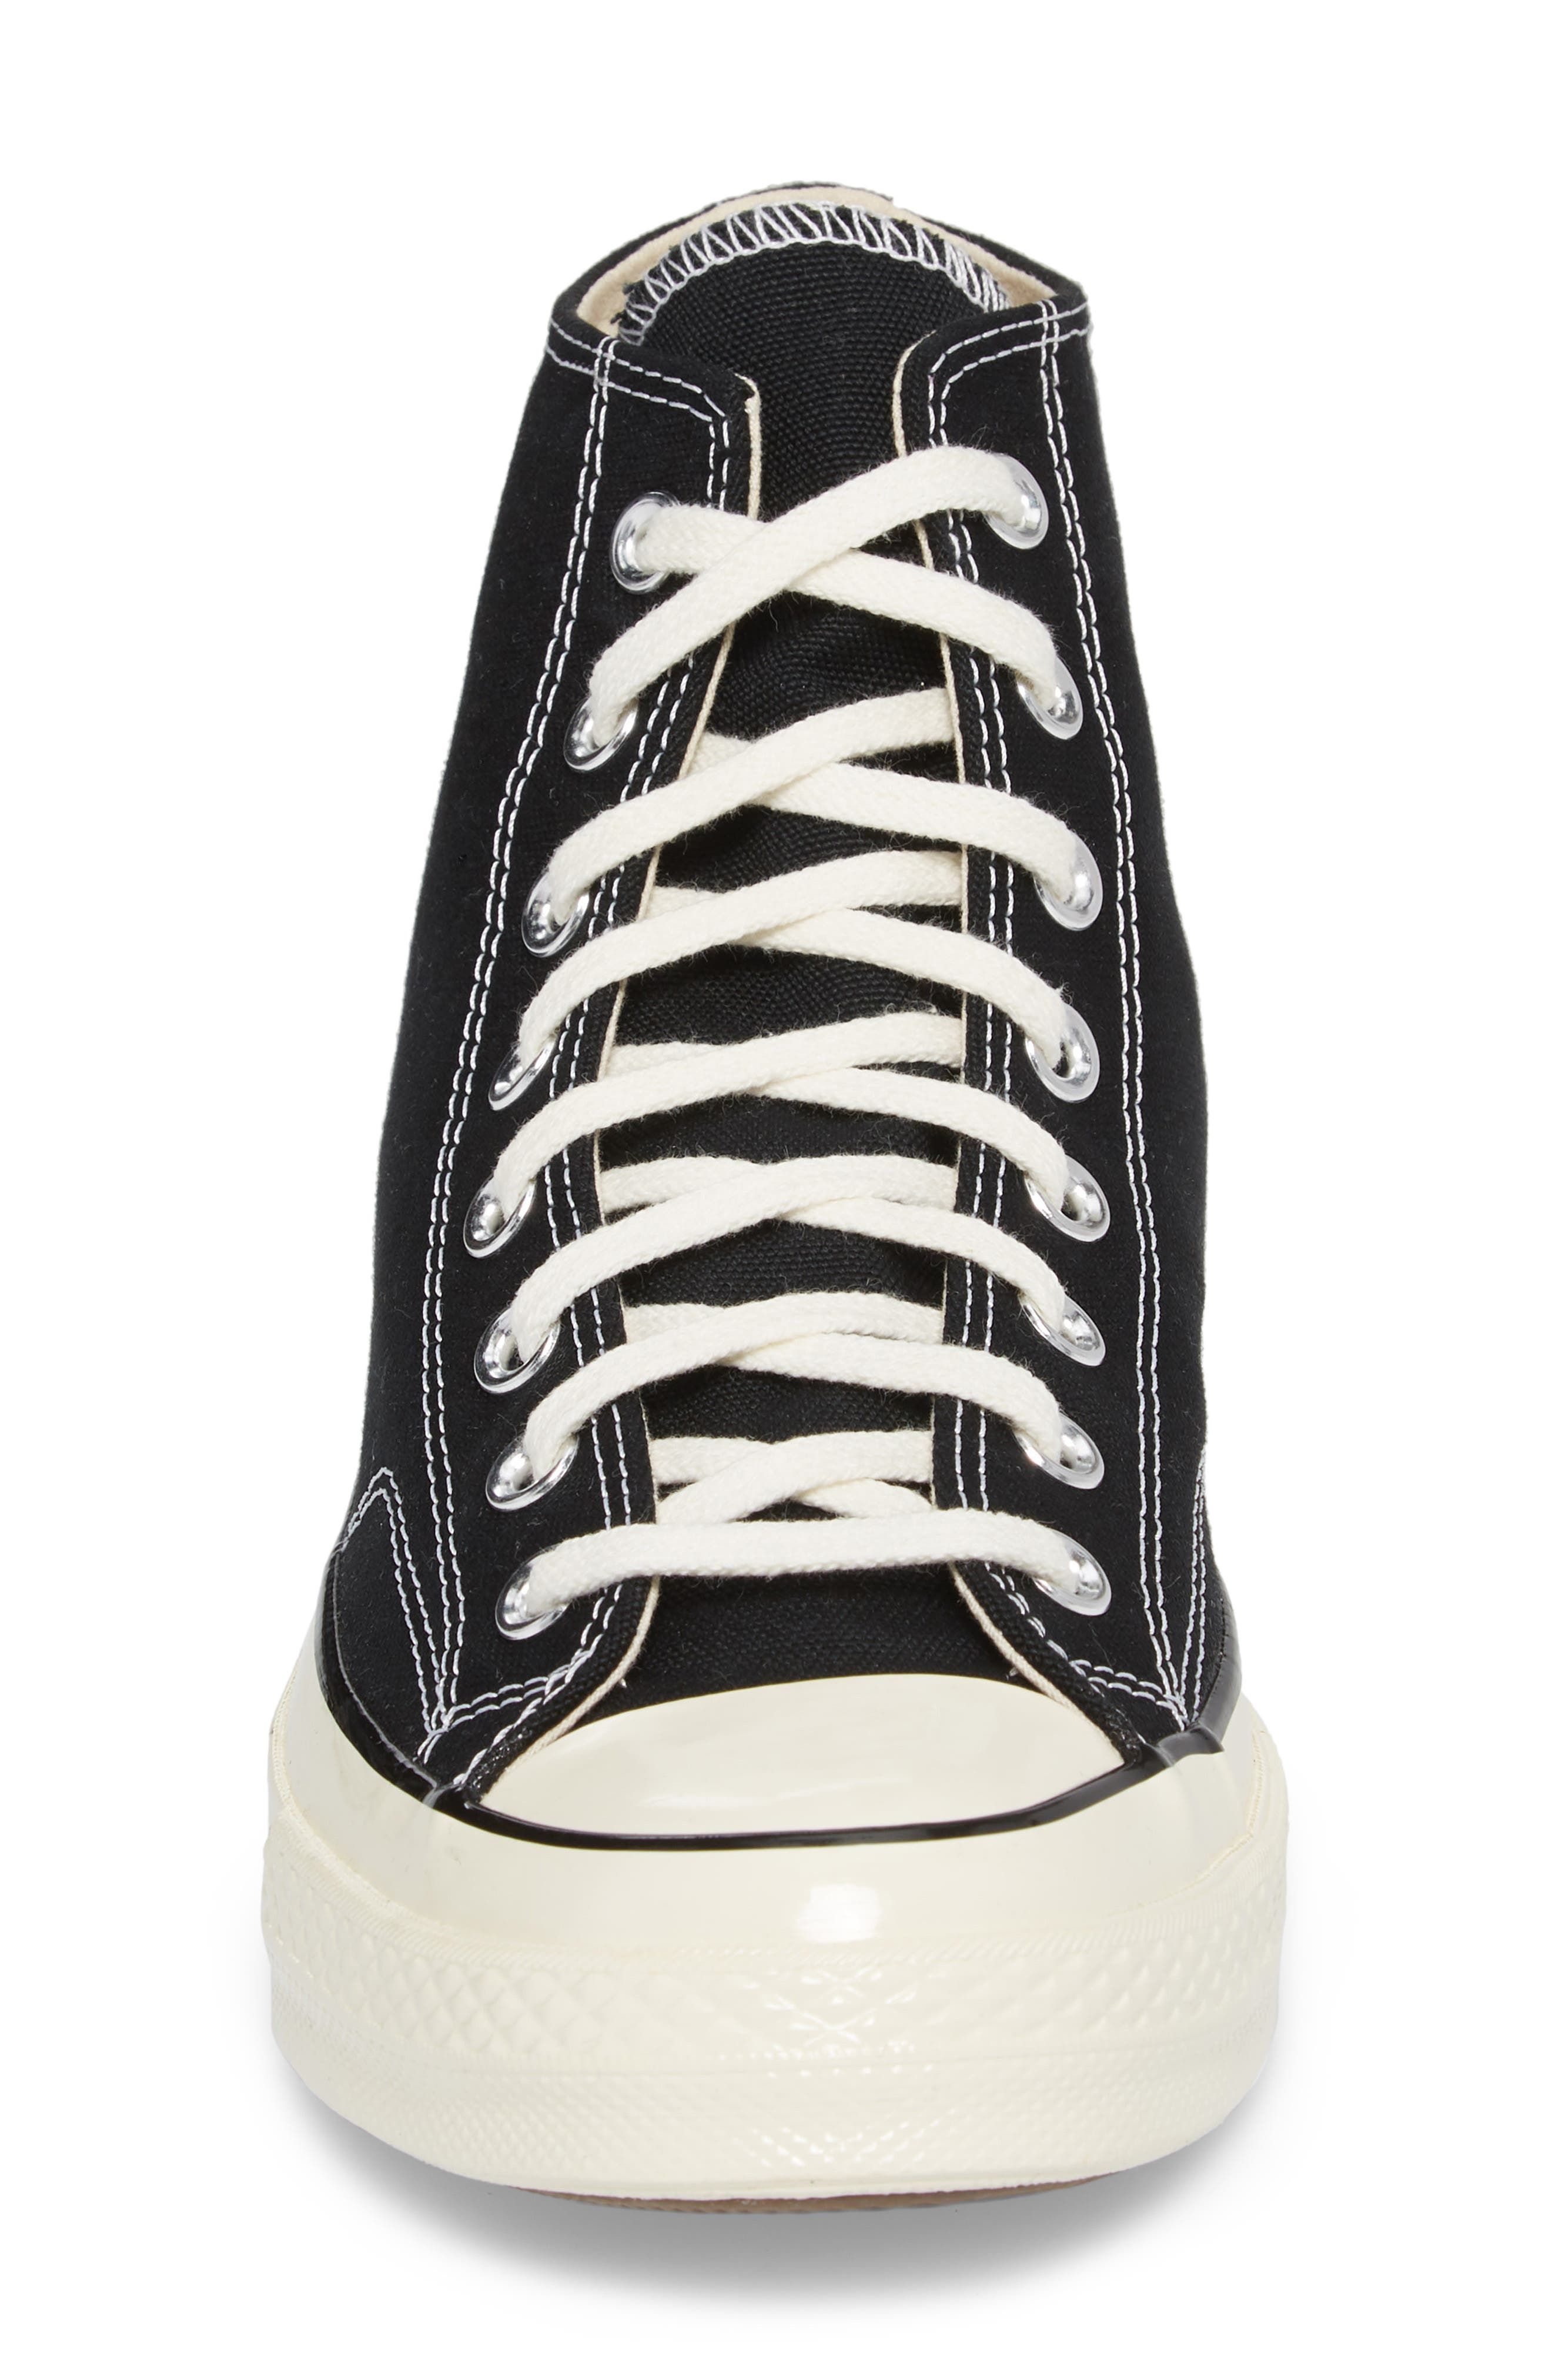 CONVERSE, Chuck Taylor<sup>®</sup> All Star<sup>®</sup> 70 High Top Sneaker, Alternate thumbnail 4, color, BLACK